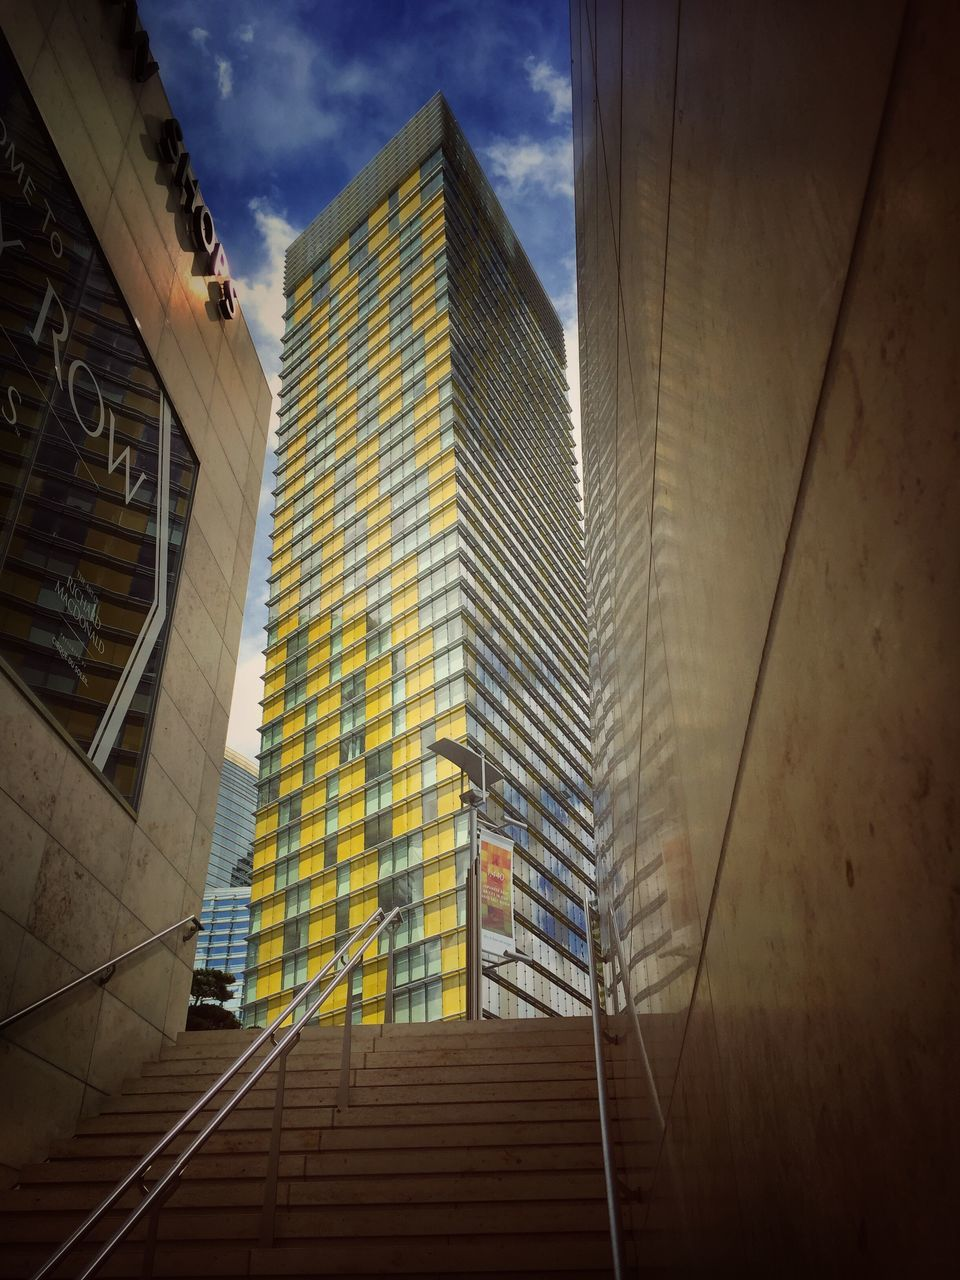 architecture, built structure, building exterior, modern, staircase, low angle view, skyscraper, steps, steps and staircases, sky, day, no people, outdoors, city